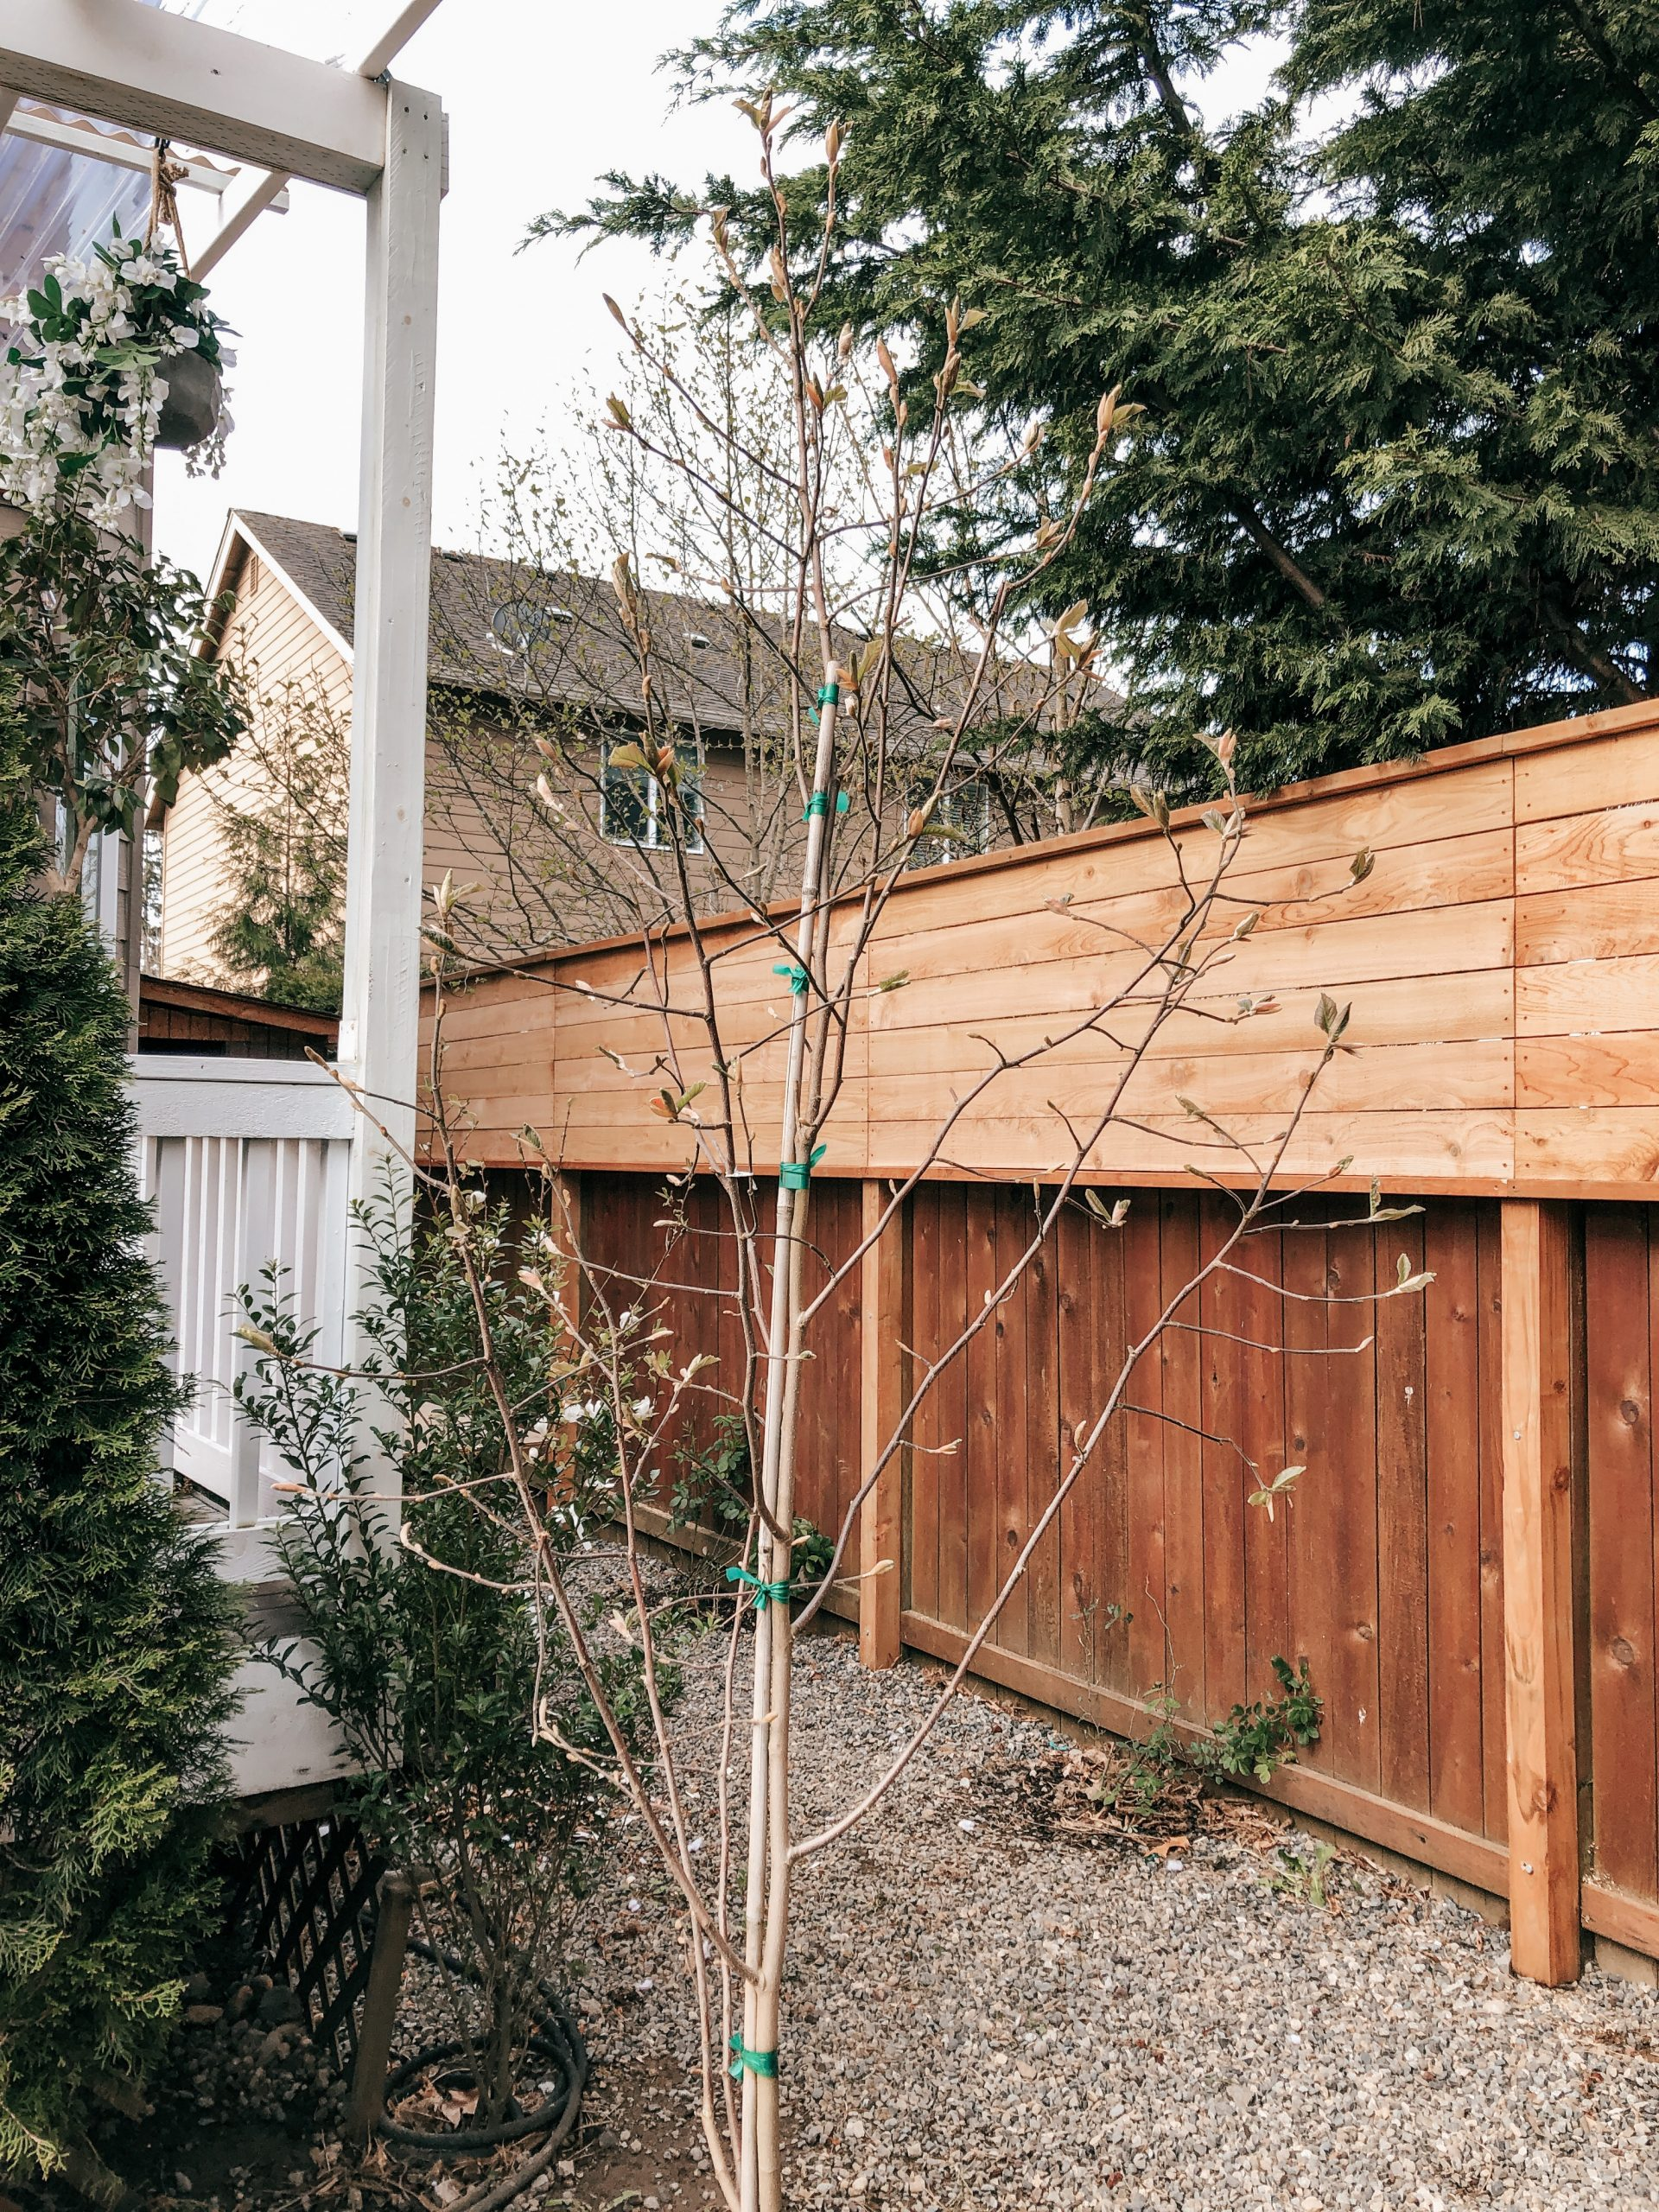 Wood Fence Extension Kits Best Coffee Tables Design Ideas Backyard Privacy Building A Fence Backyard Fences